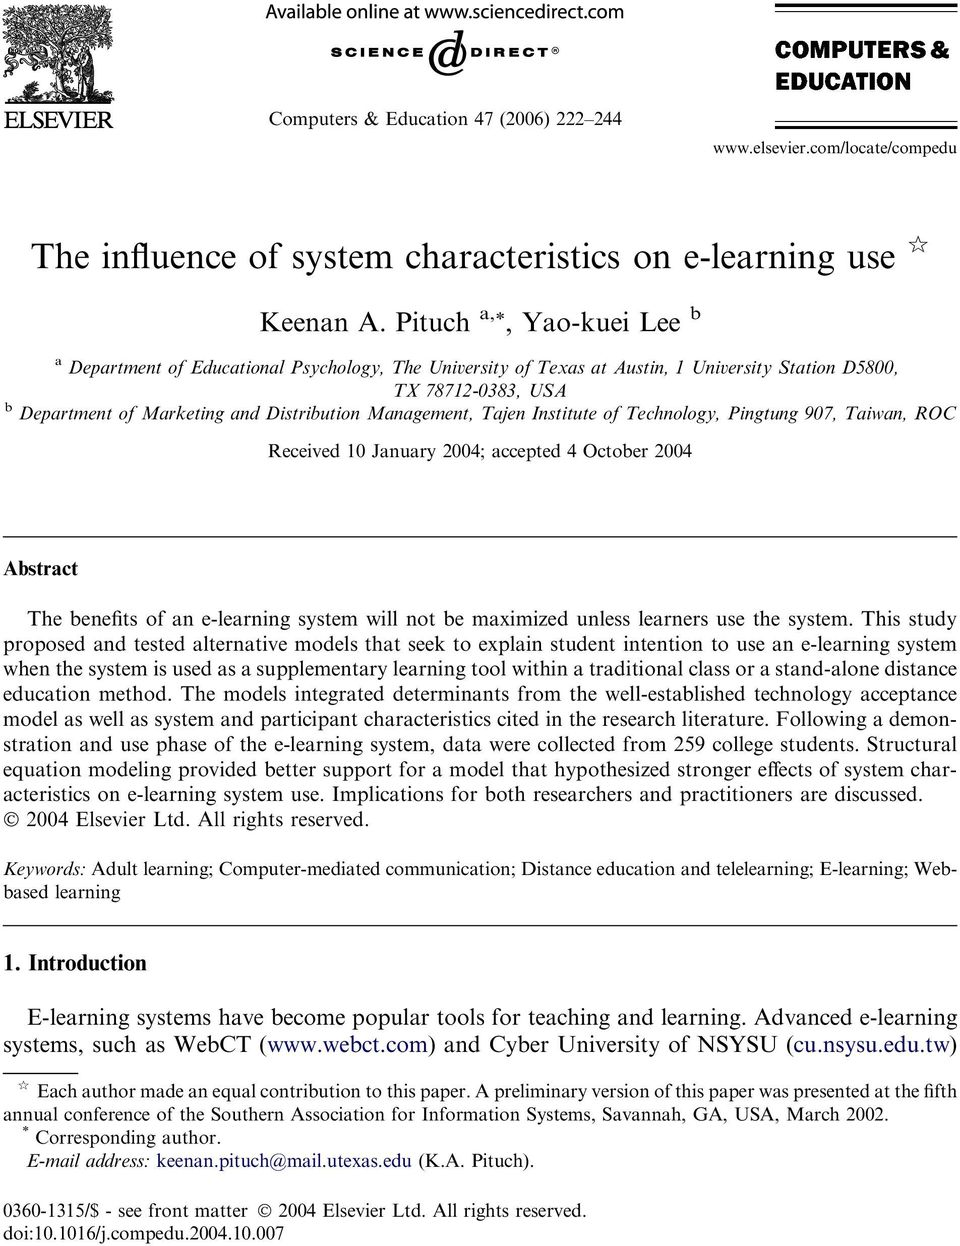 Management, Tajen Institute of Technology, Pingtung 907, Taiwan, ROC Received 10 January 2004; accepted 4 October 2004 Abstract The benefits of an e-learning system will not be maximized unless